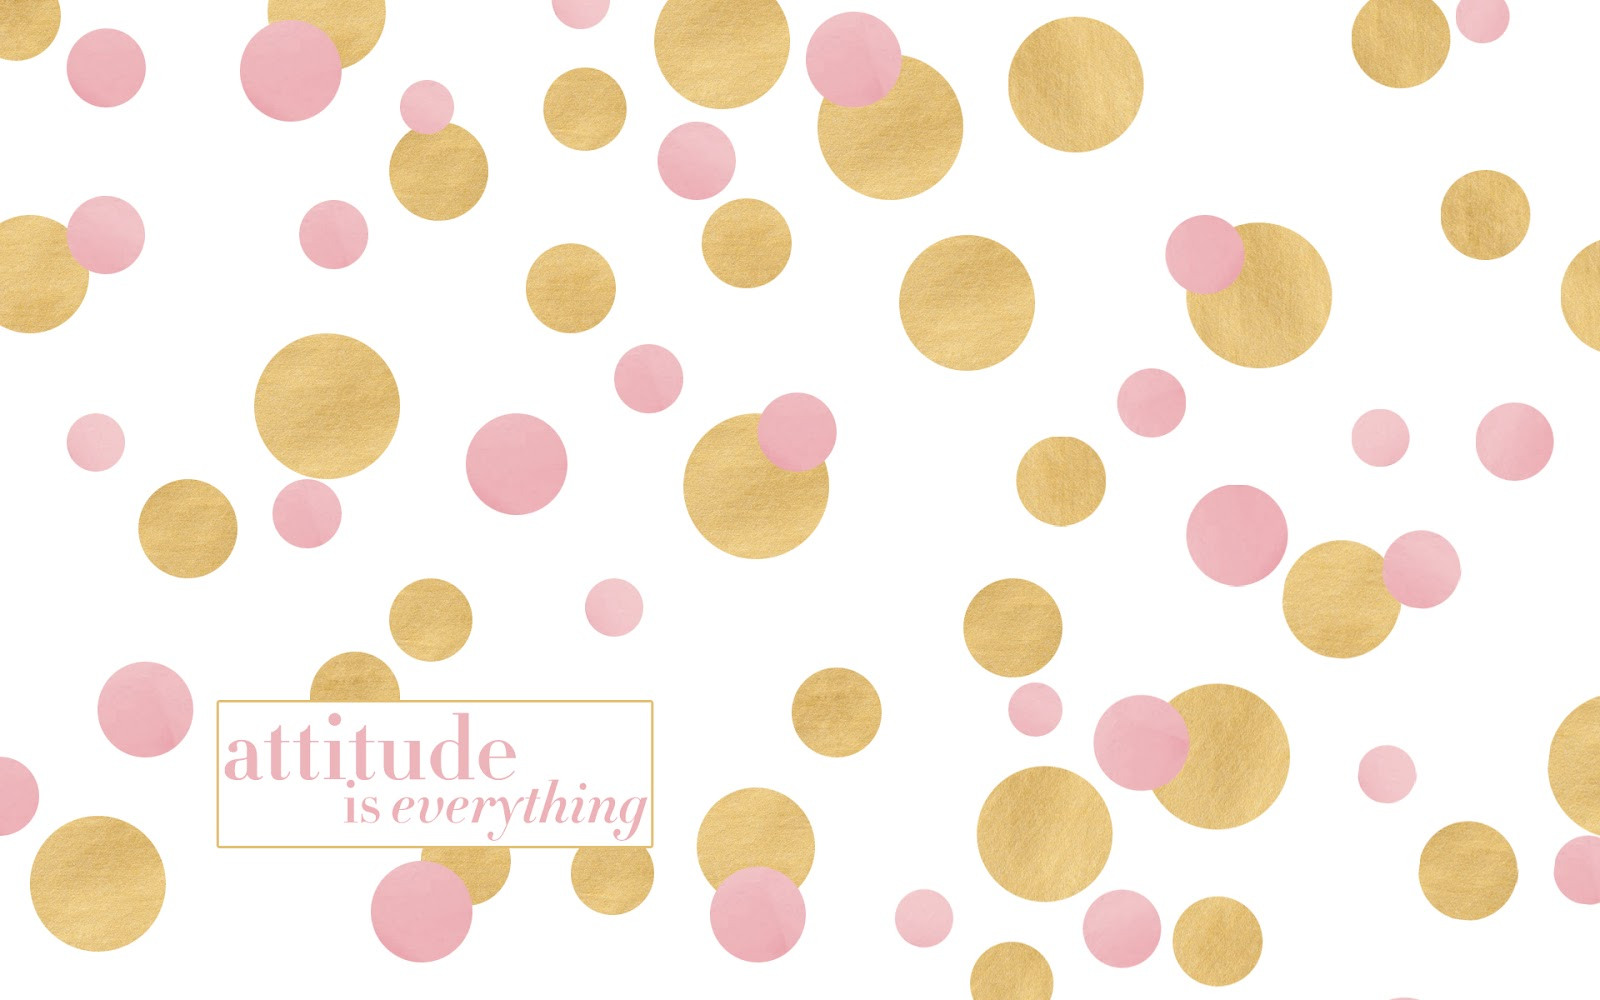 48 Gold Polka Dot Wallpaper On Wallpapersafari